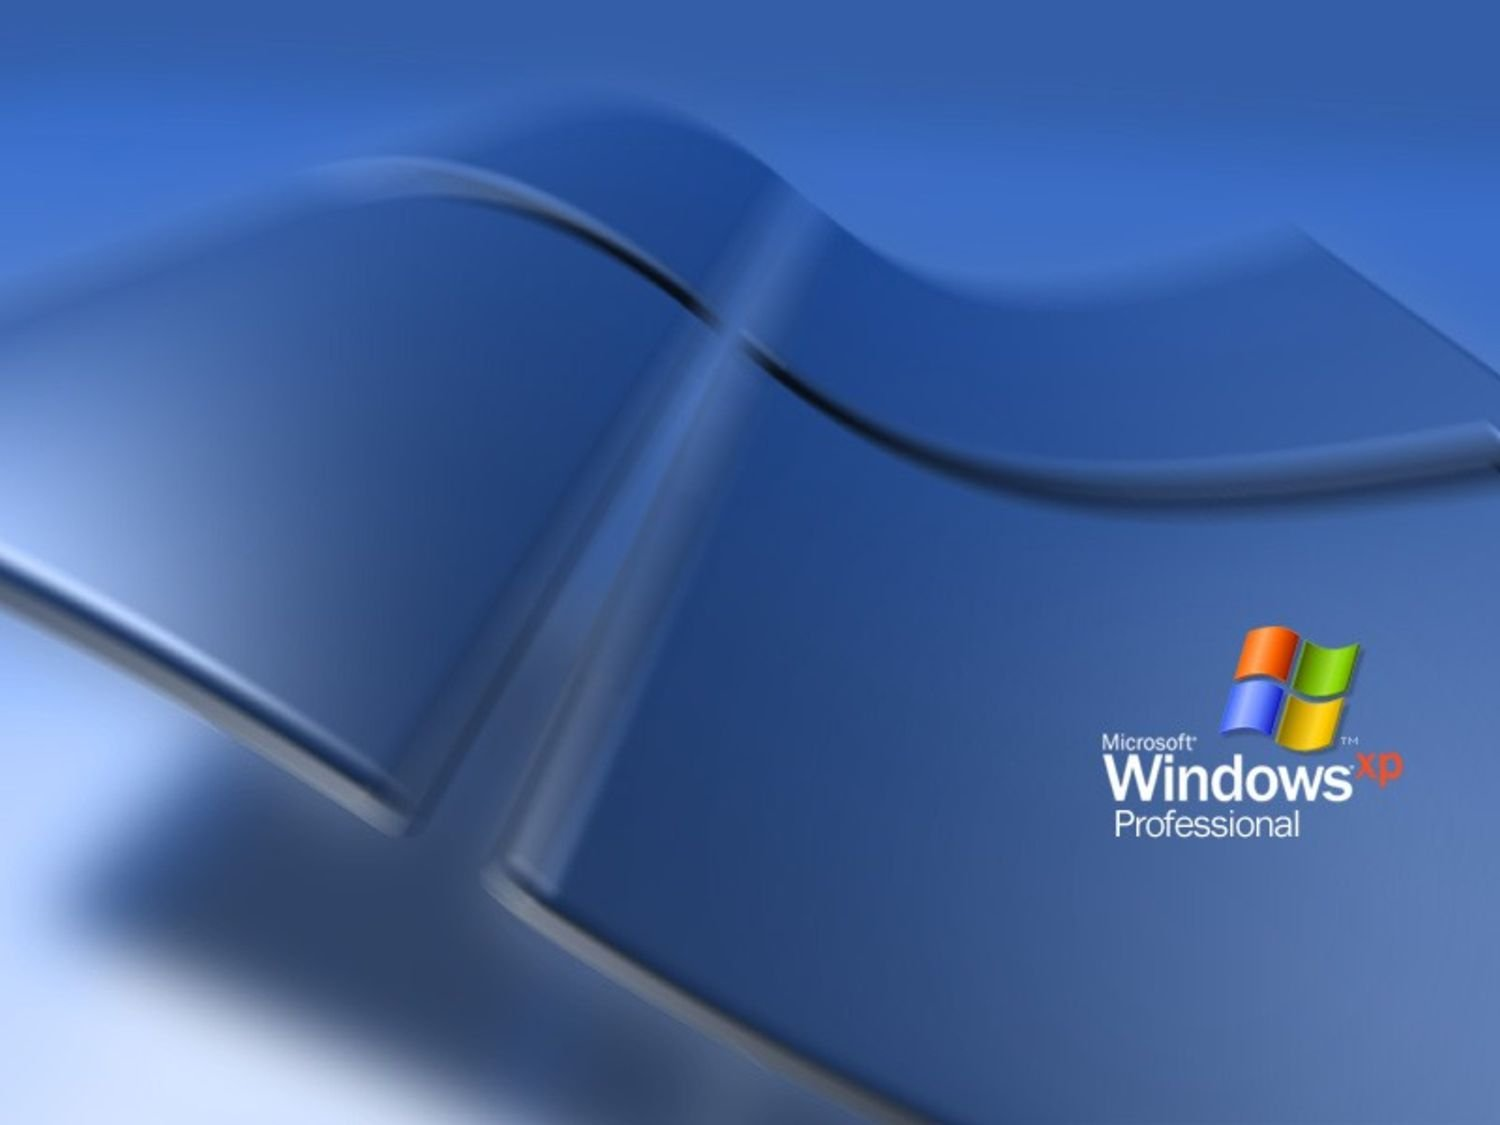 WINDOWS%20XP%20PROFESSIONAL.jpg